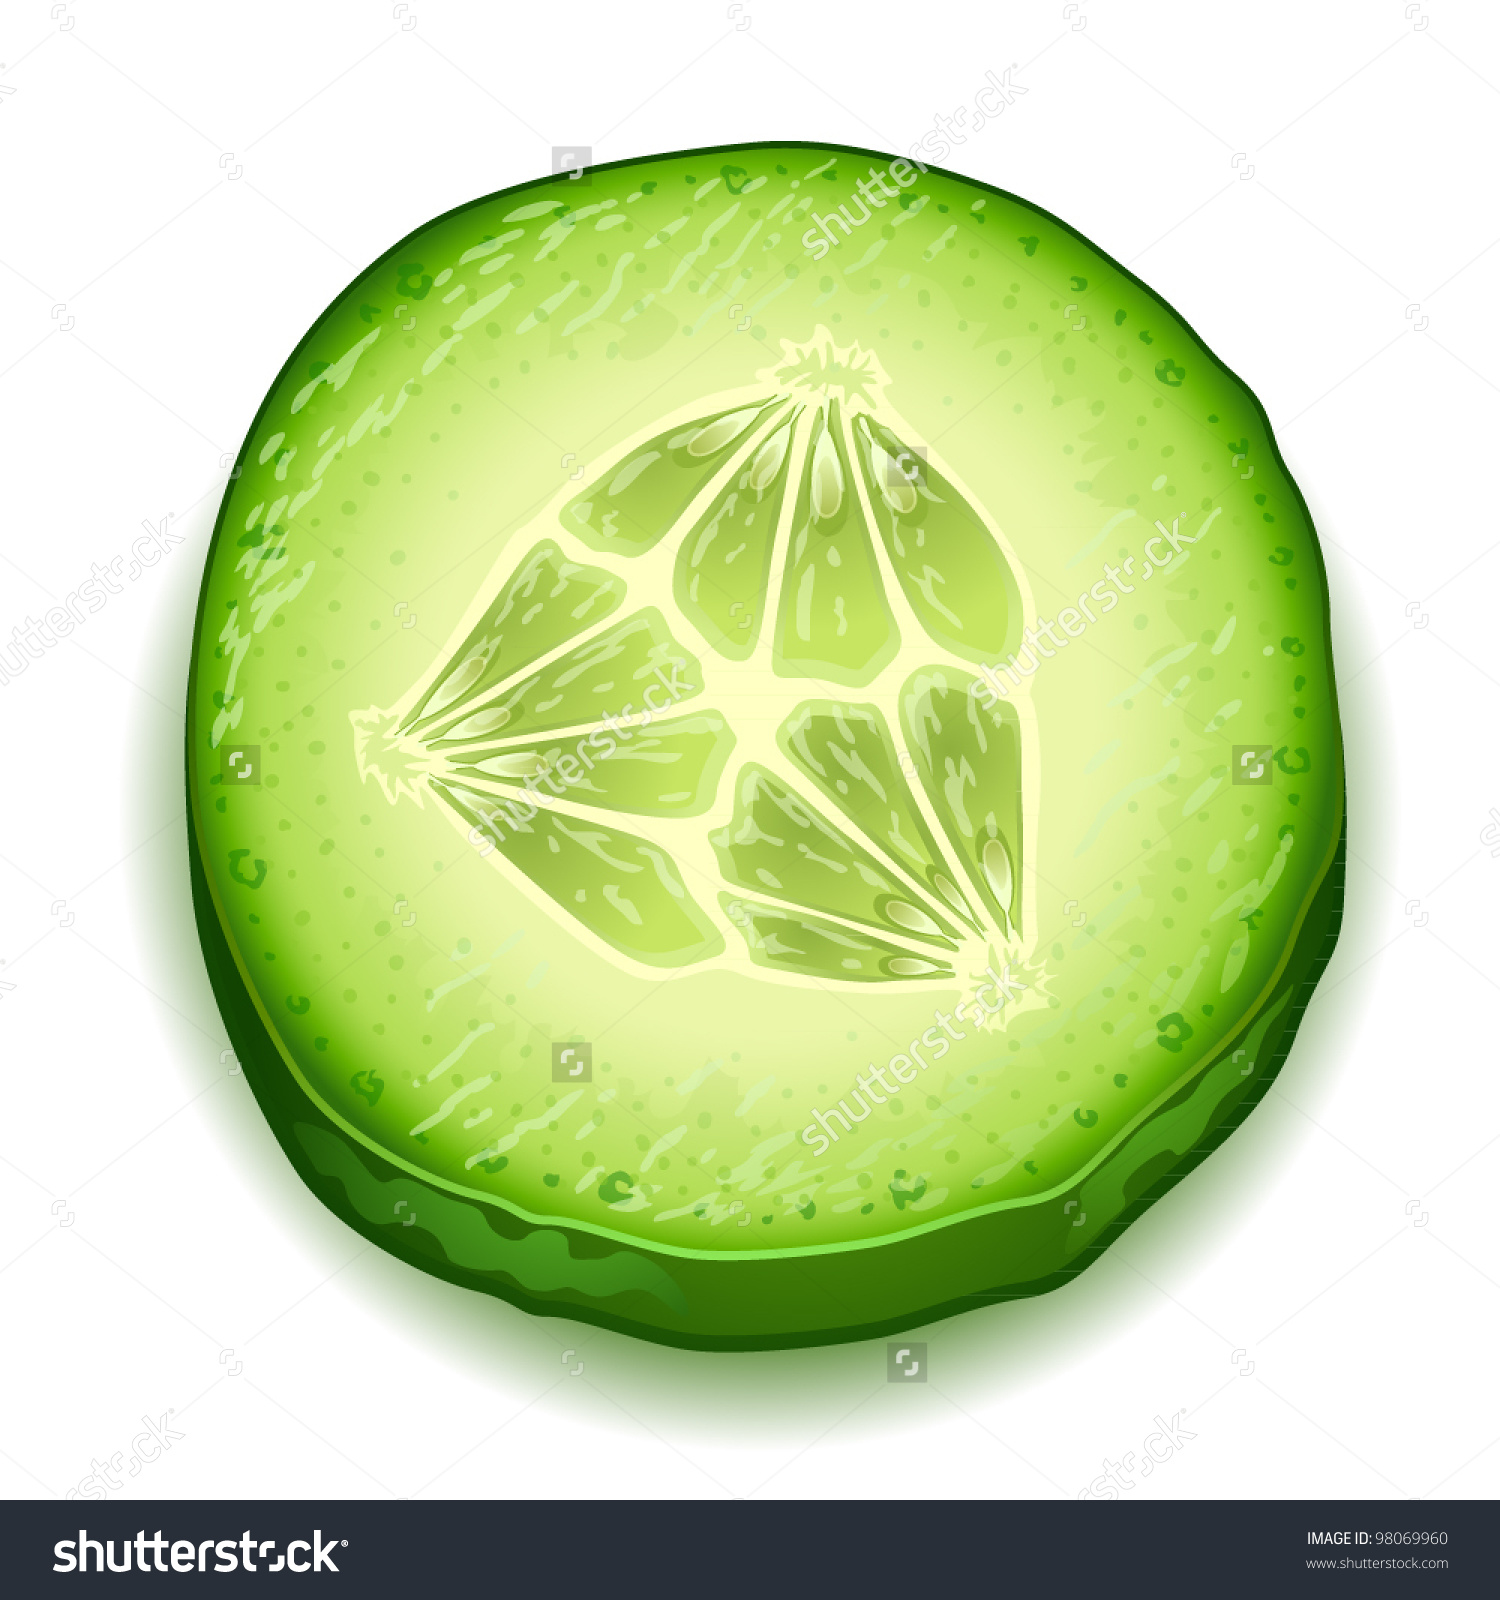 Cucumber slices clipart - Clipground